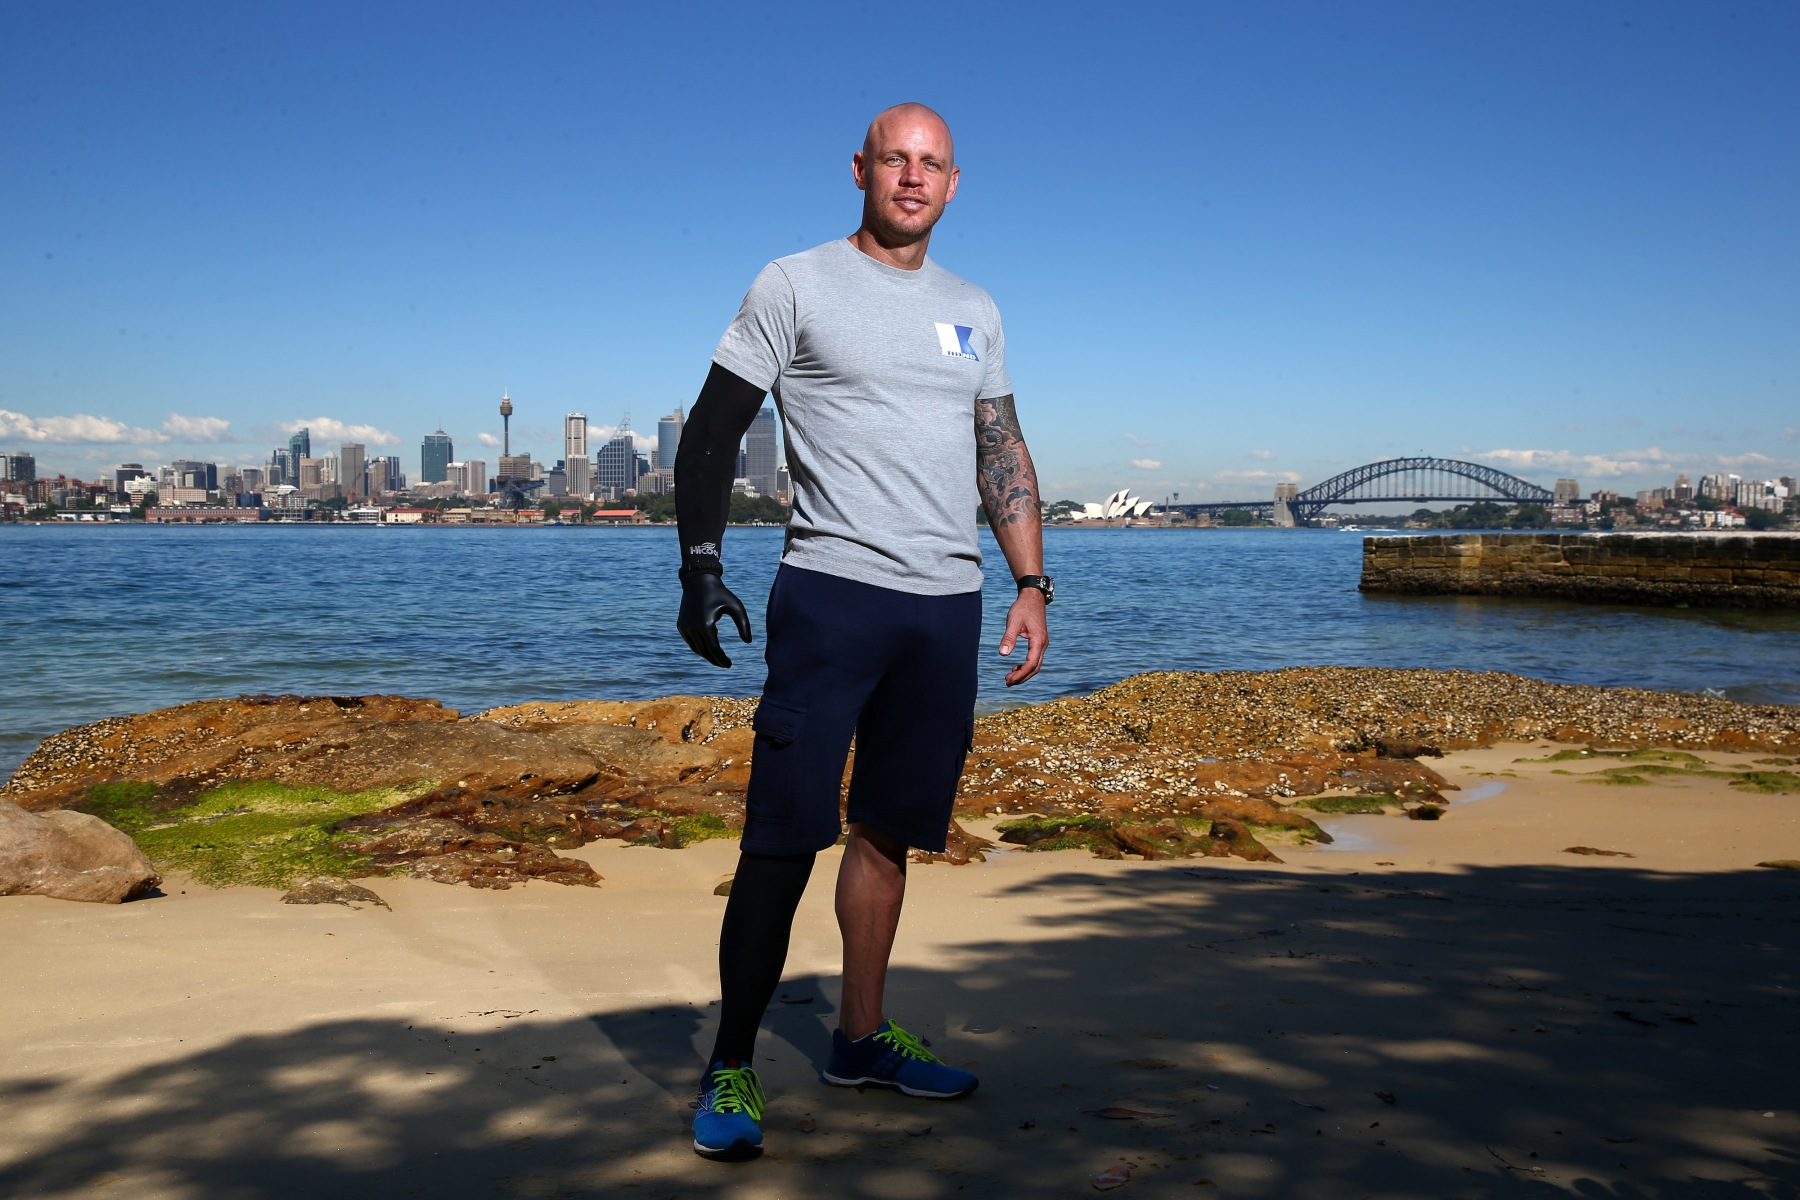 Paul de Gelder: From Shark Attack Survivor to